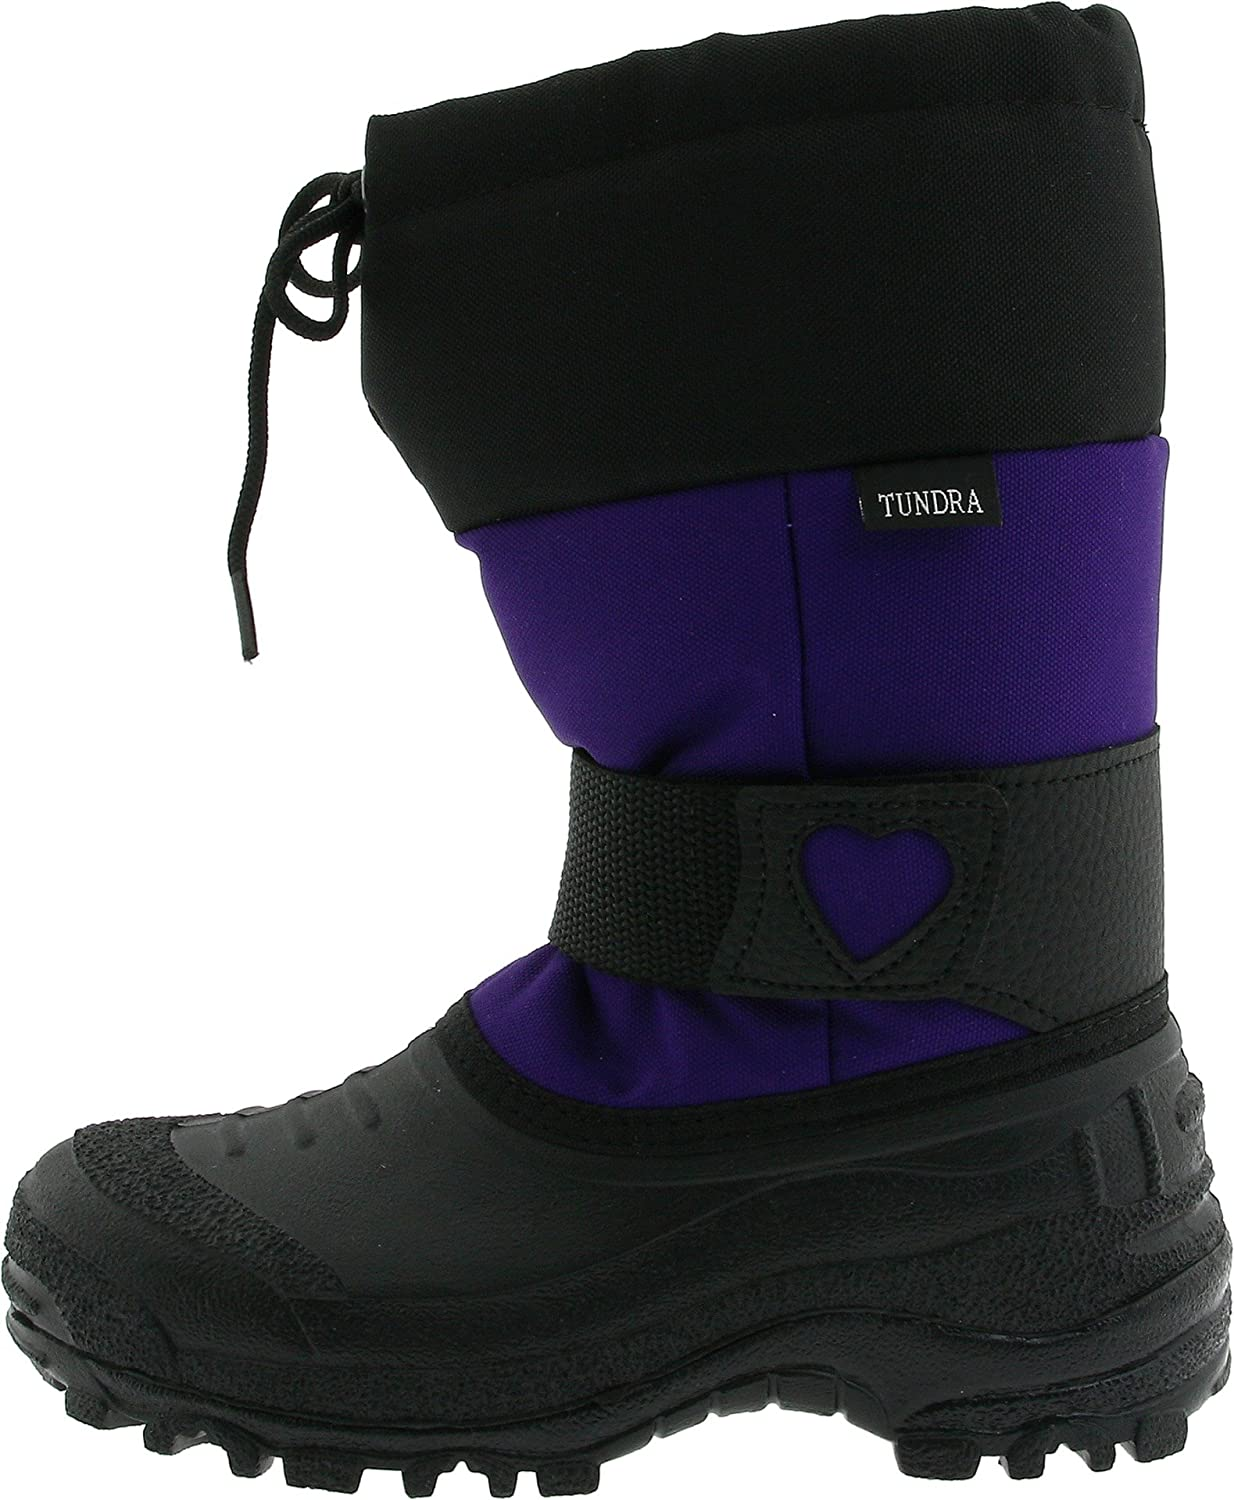 Little Kid//Big Kid Tundra Montana Winter Boot K Tundra Montana